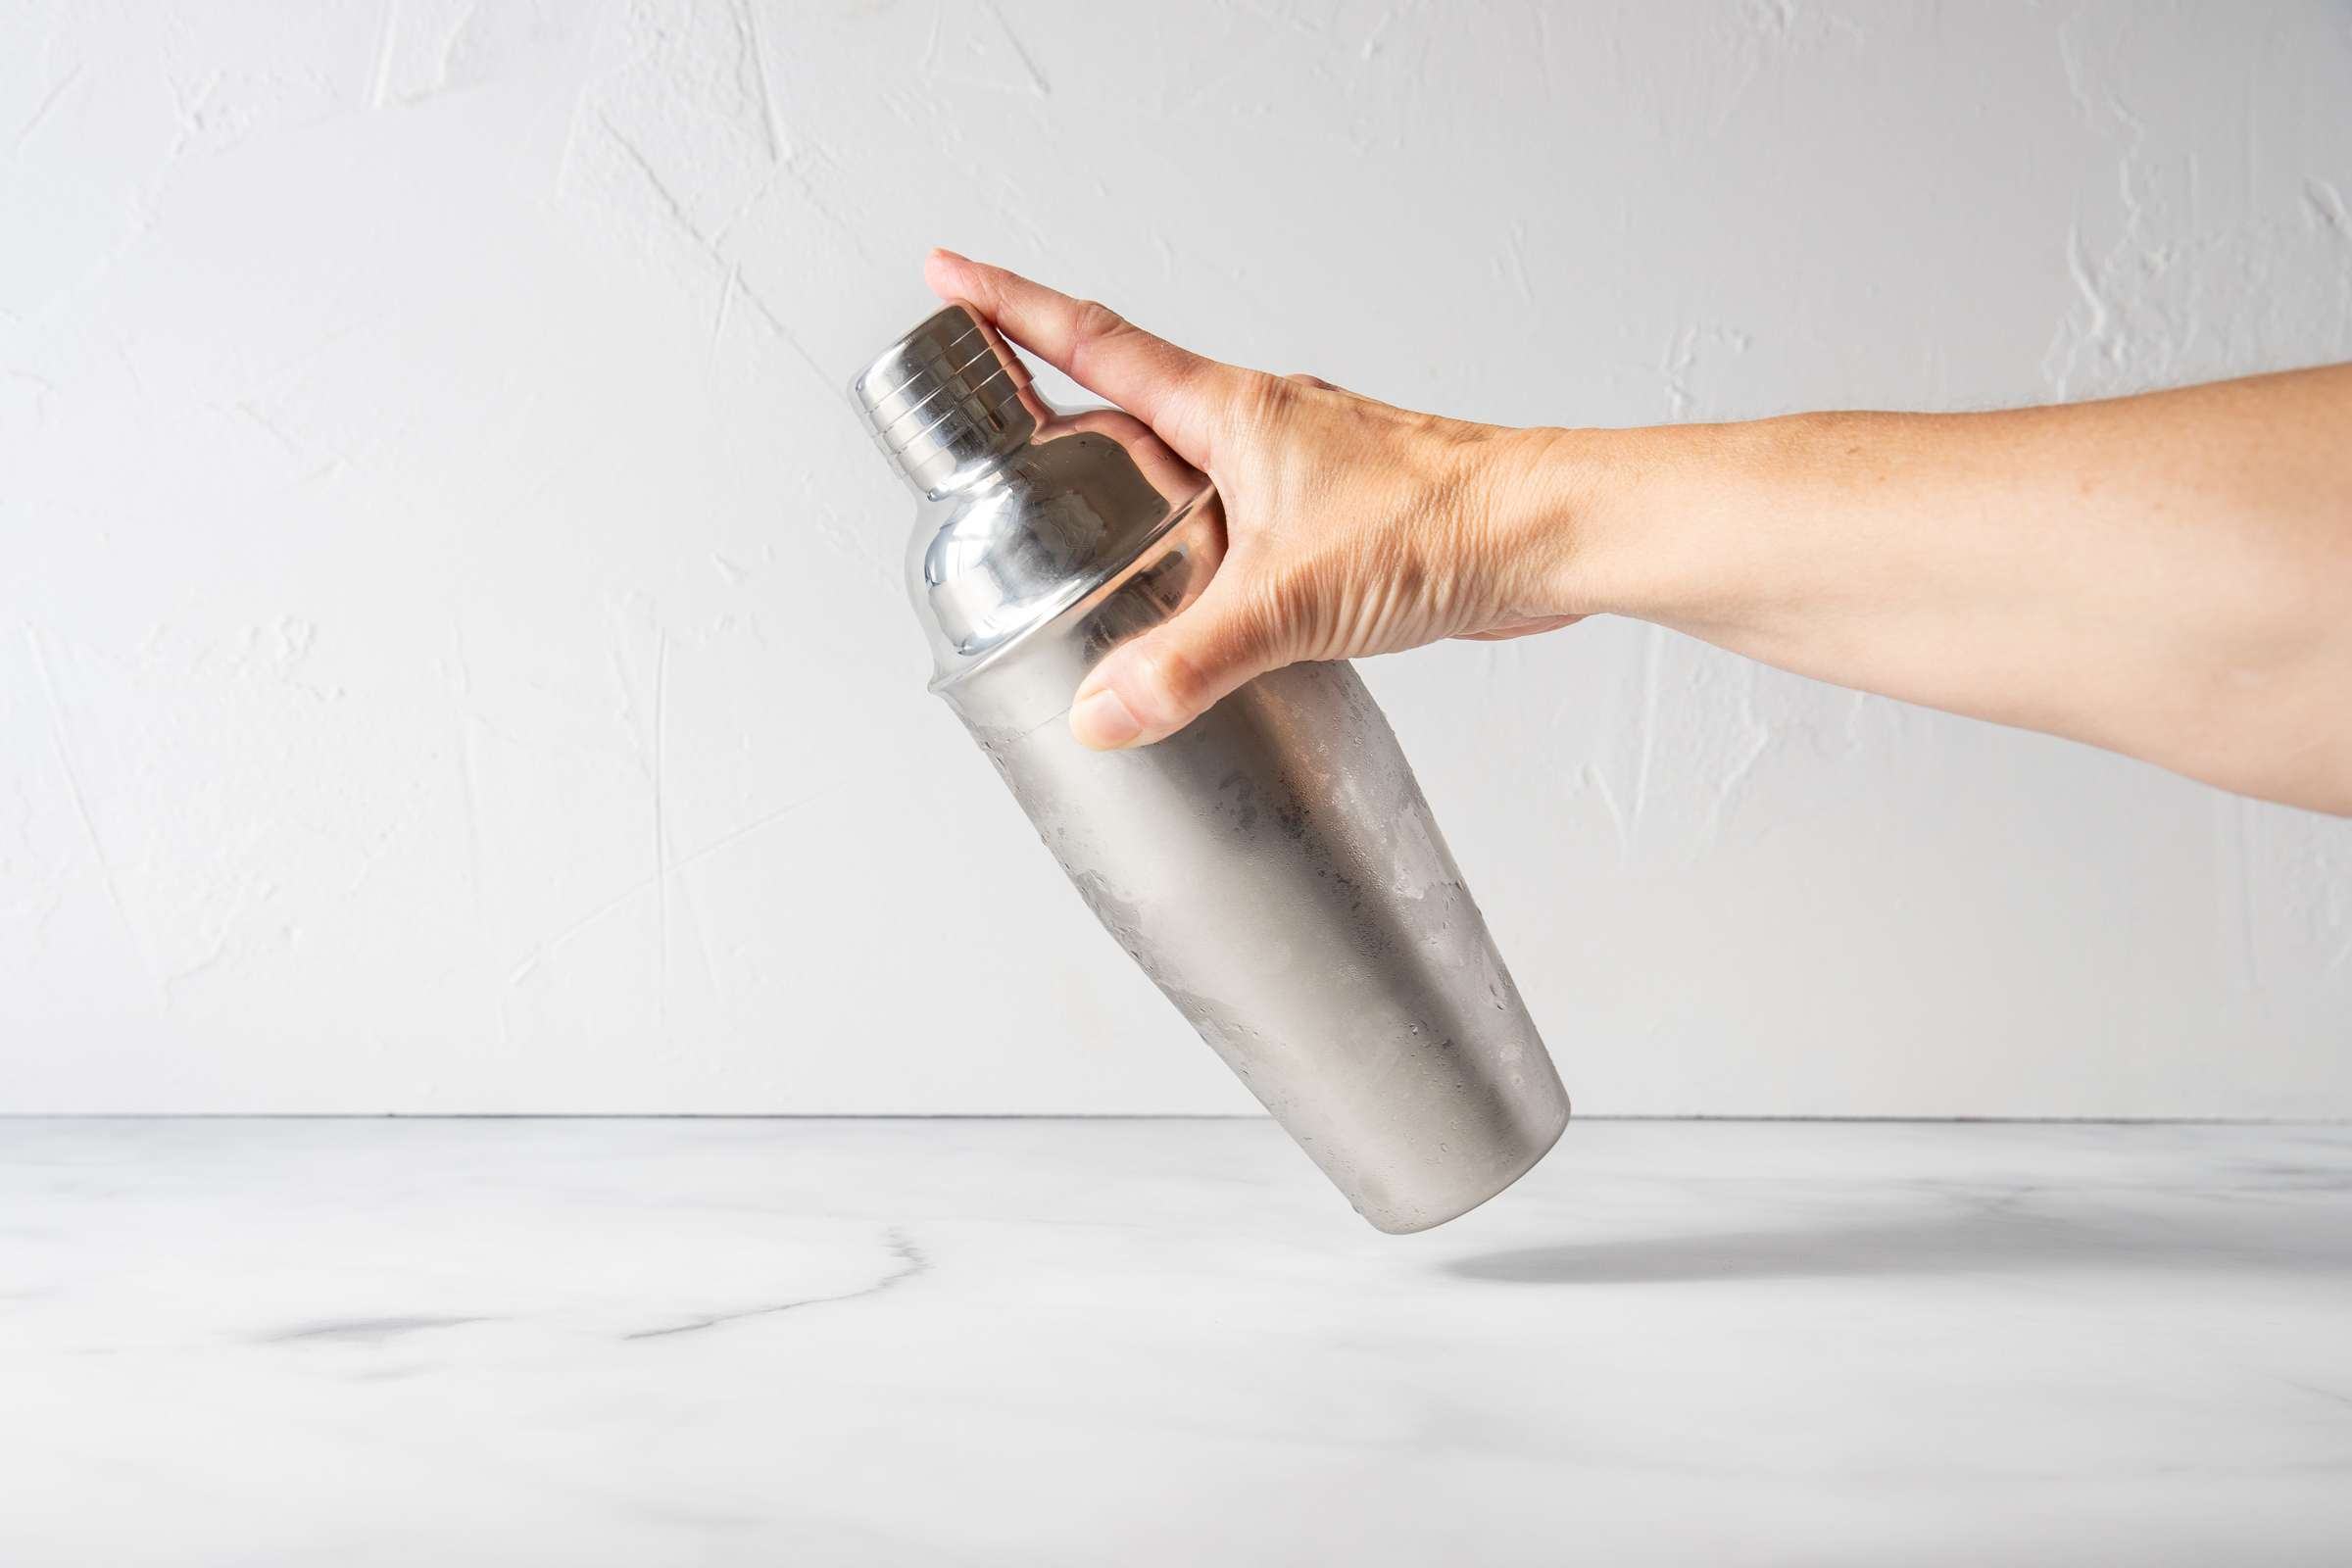 shake a cocktail shaker